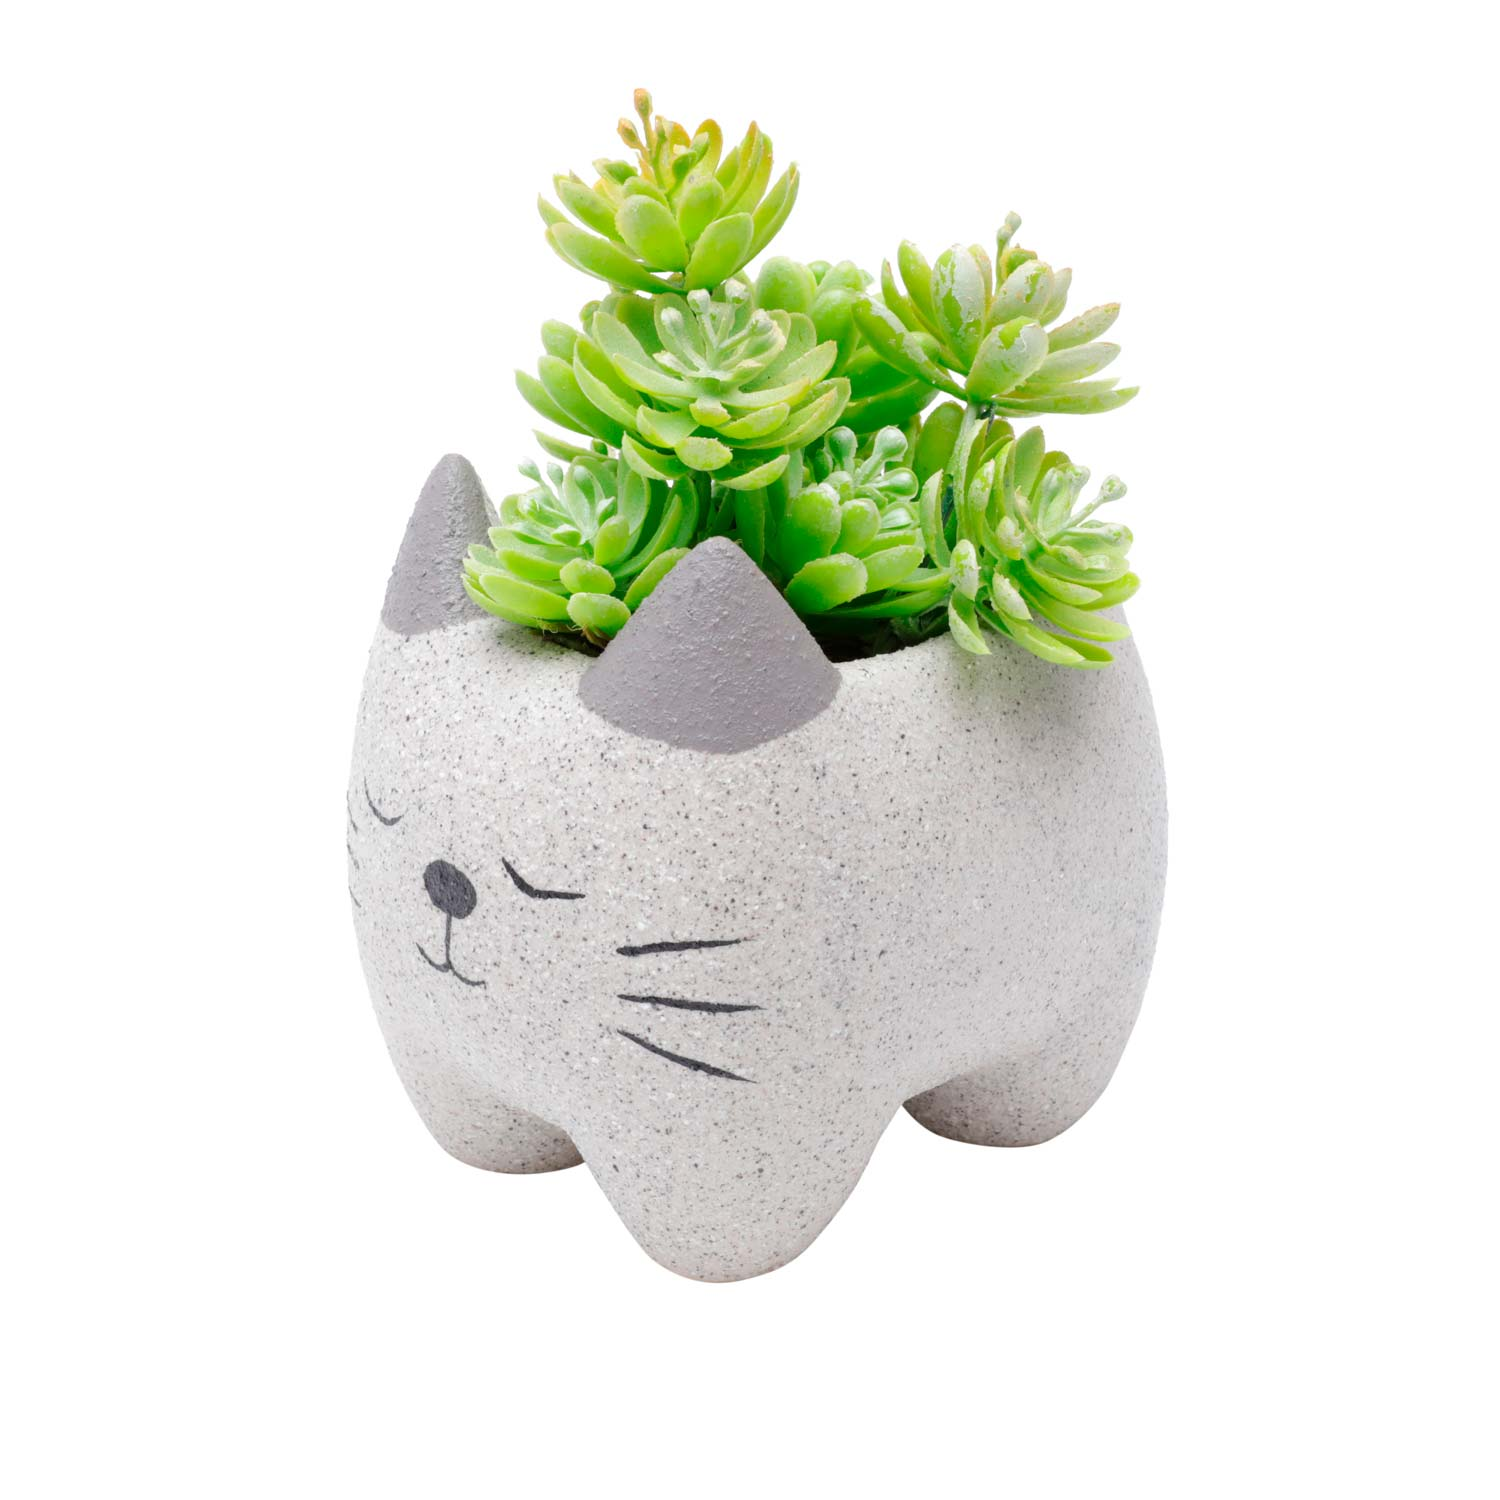 Cachepot Concreto Vaso Decorativo Sleeping Cat Gatinho - Presente Super